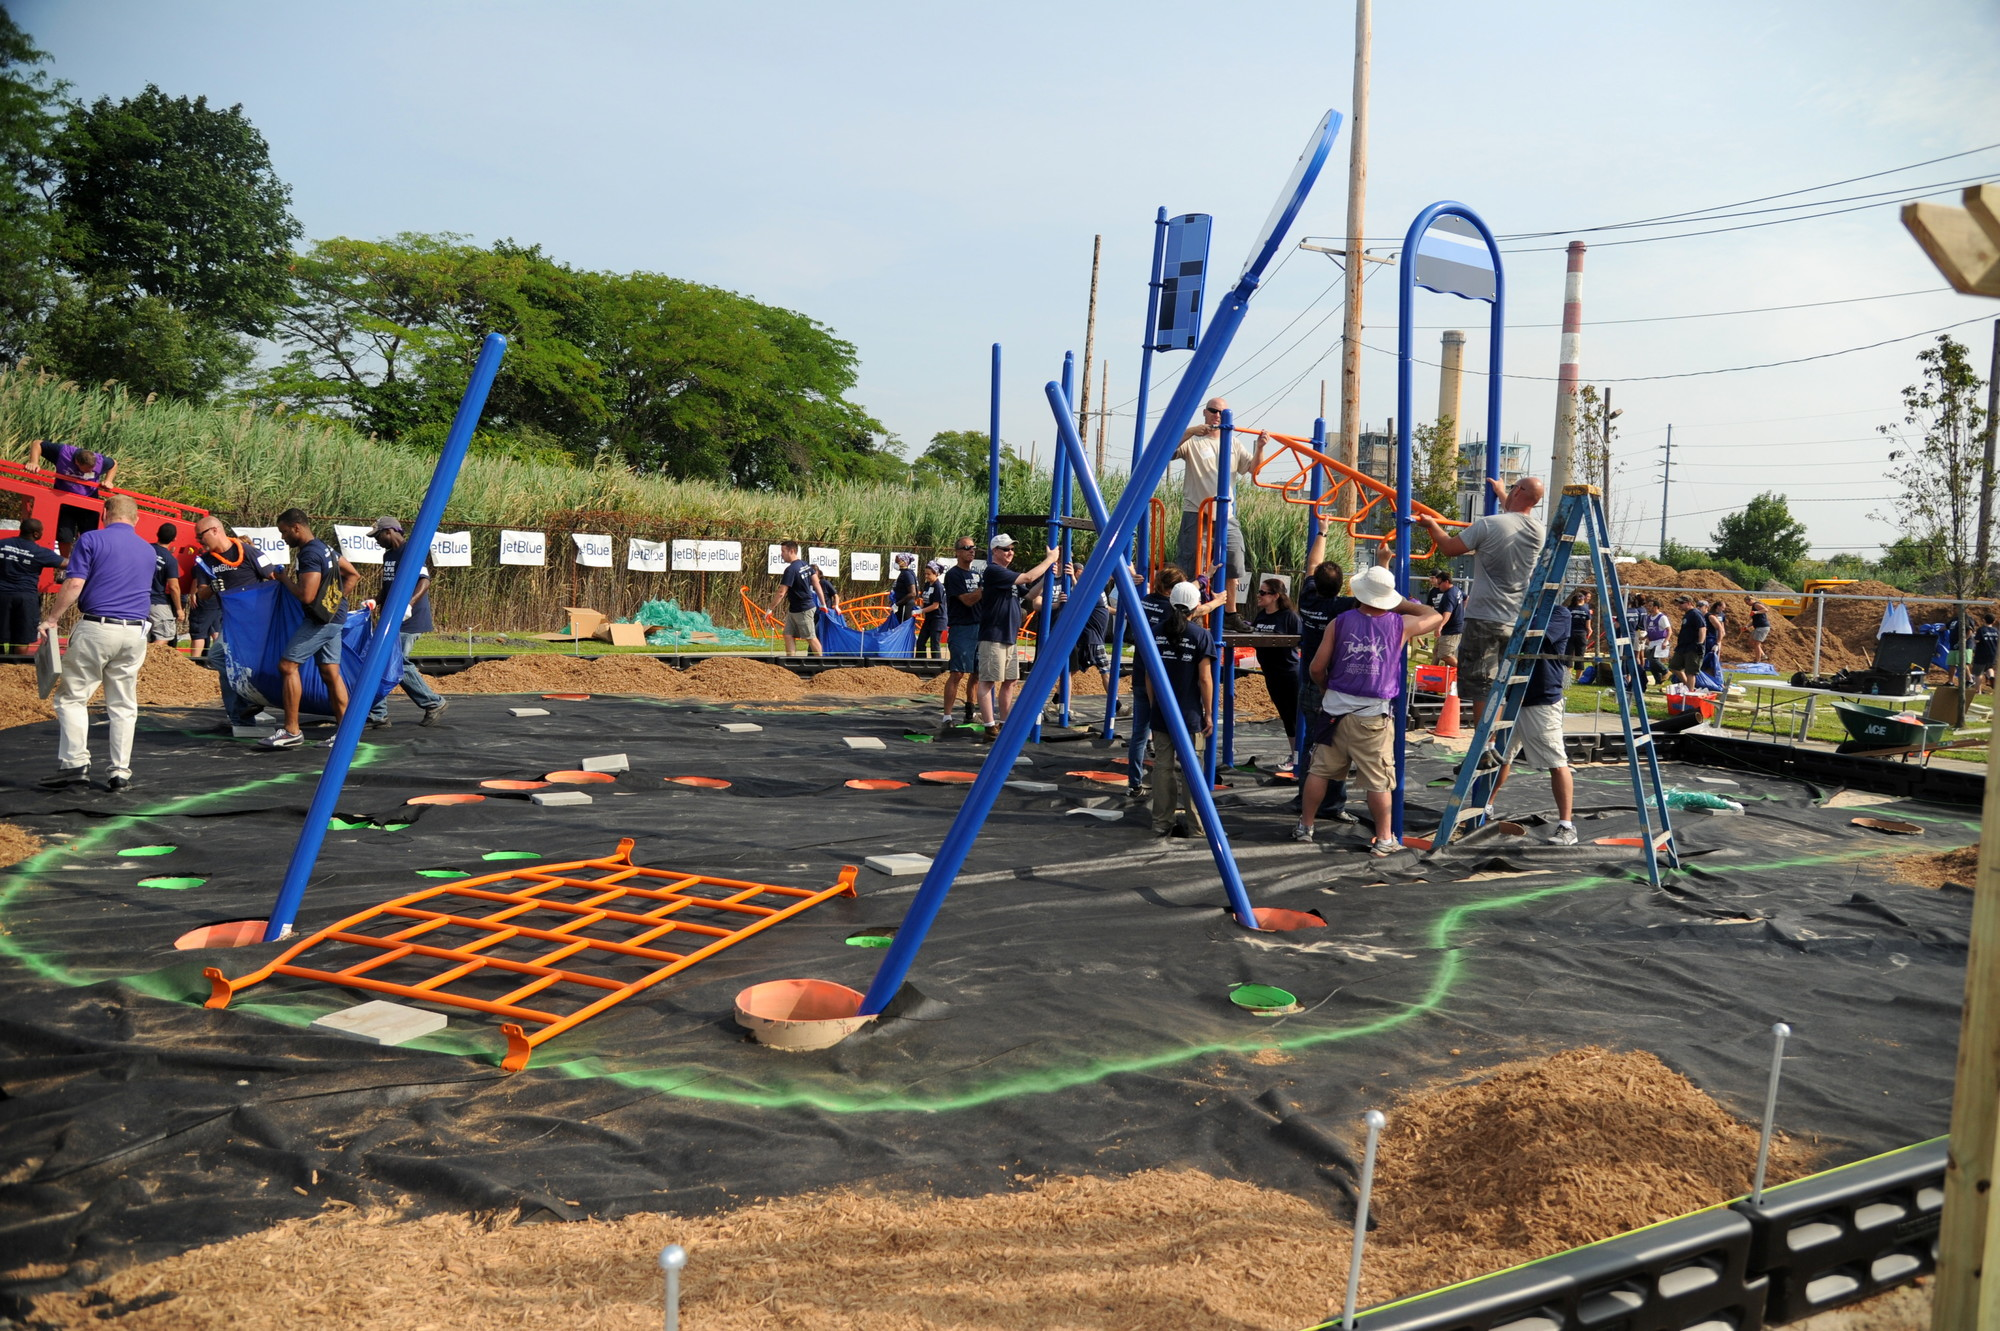 More than 200 volunteers helped to build a new park at 184 Waterford Road.